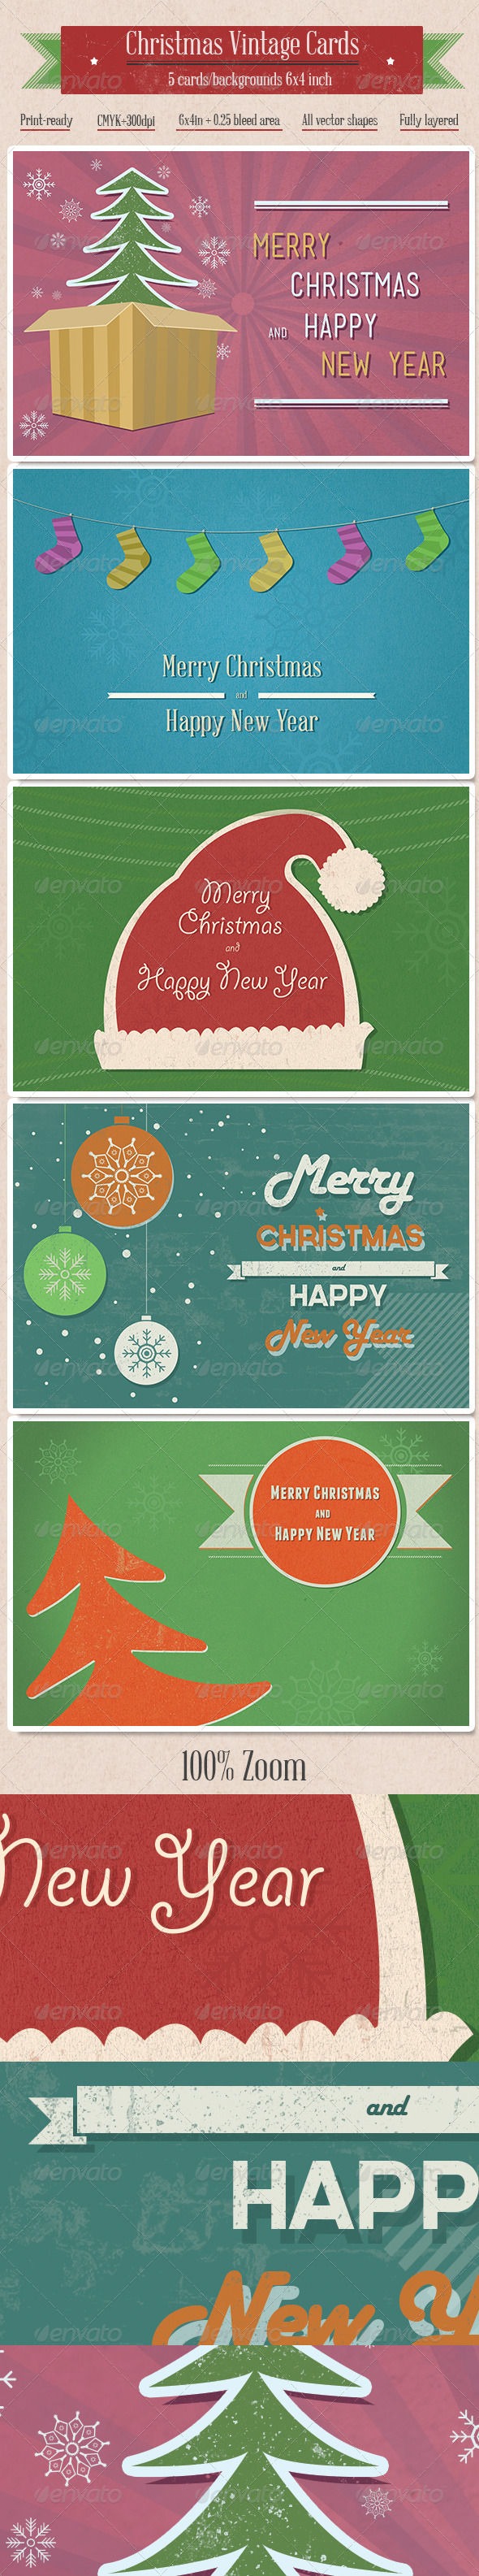 GraphicRiver 5 Vintage Christmas Cards Backgrounds 6289696